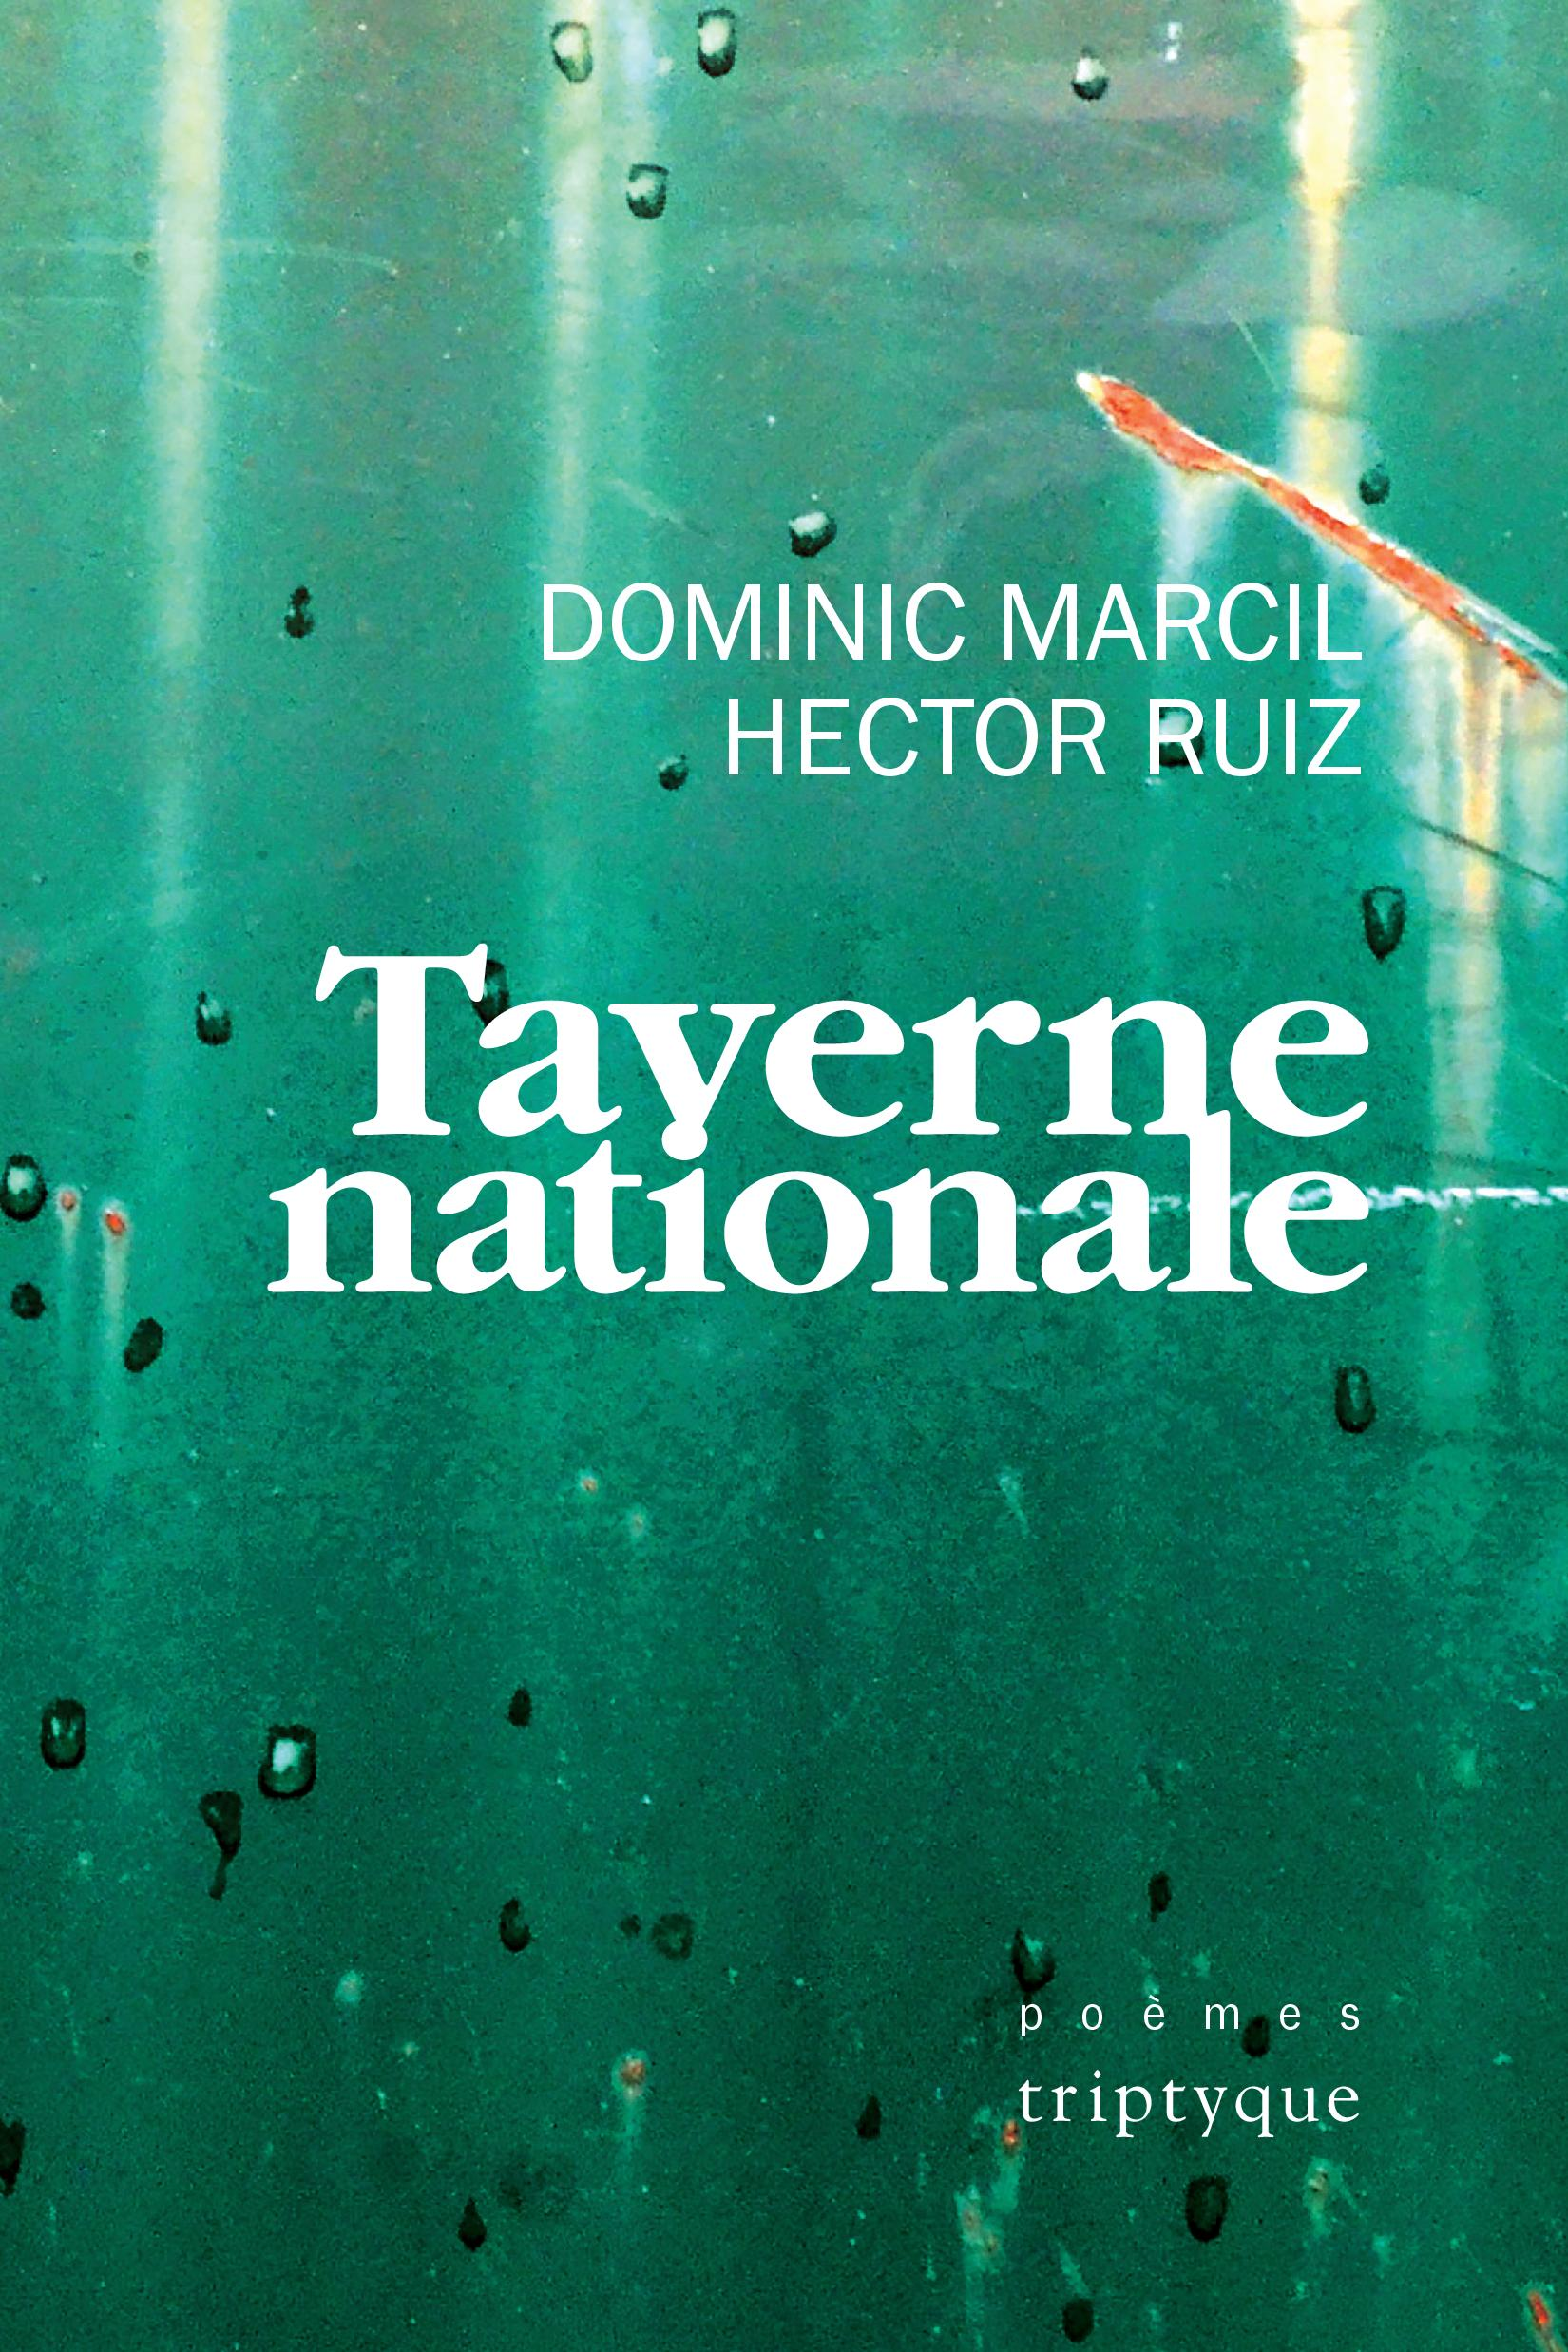 Couverture : Taverne nationale Hector Ruiz, Dominic Marcil